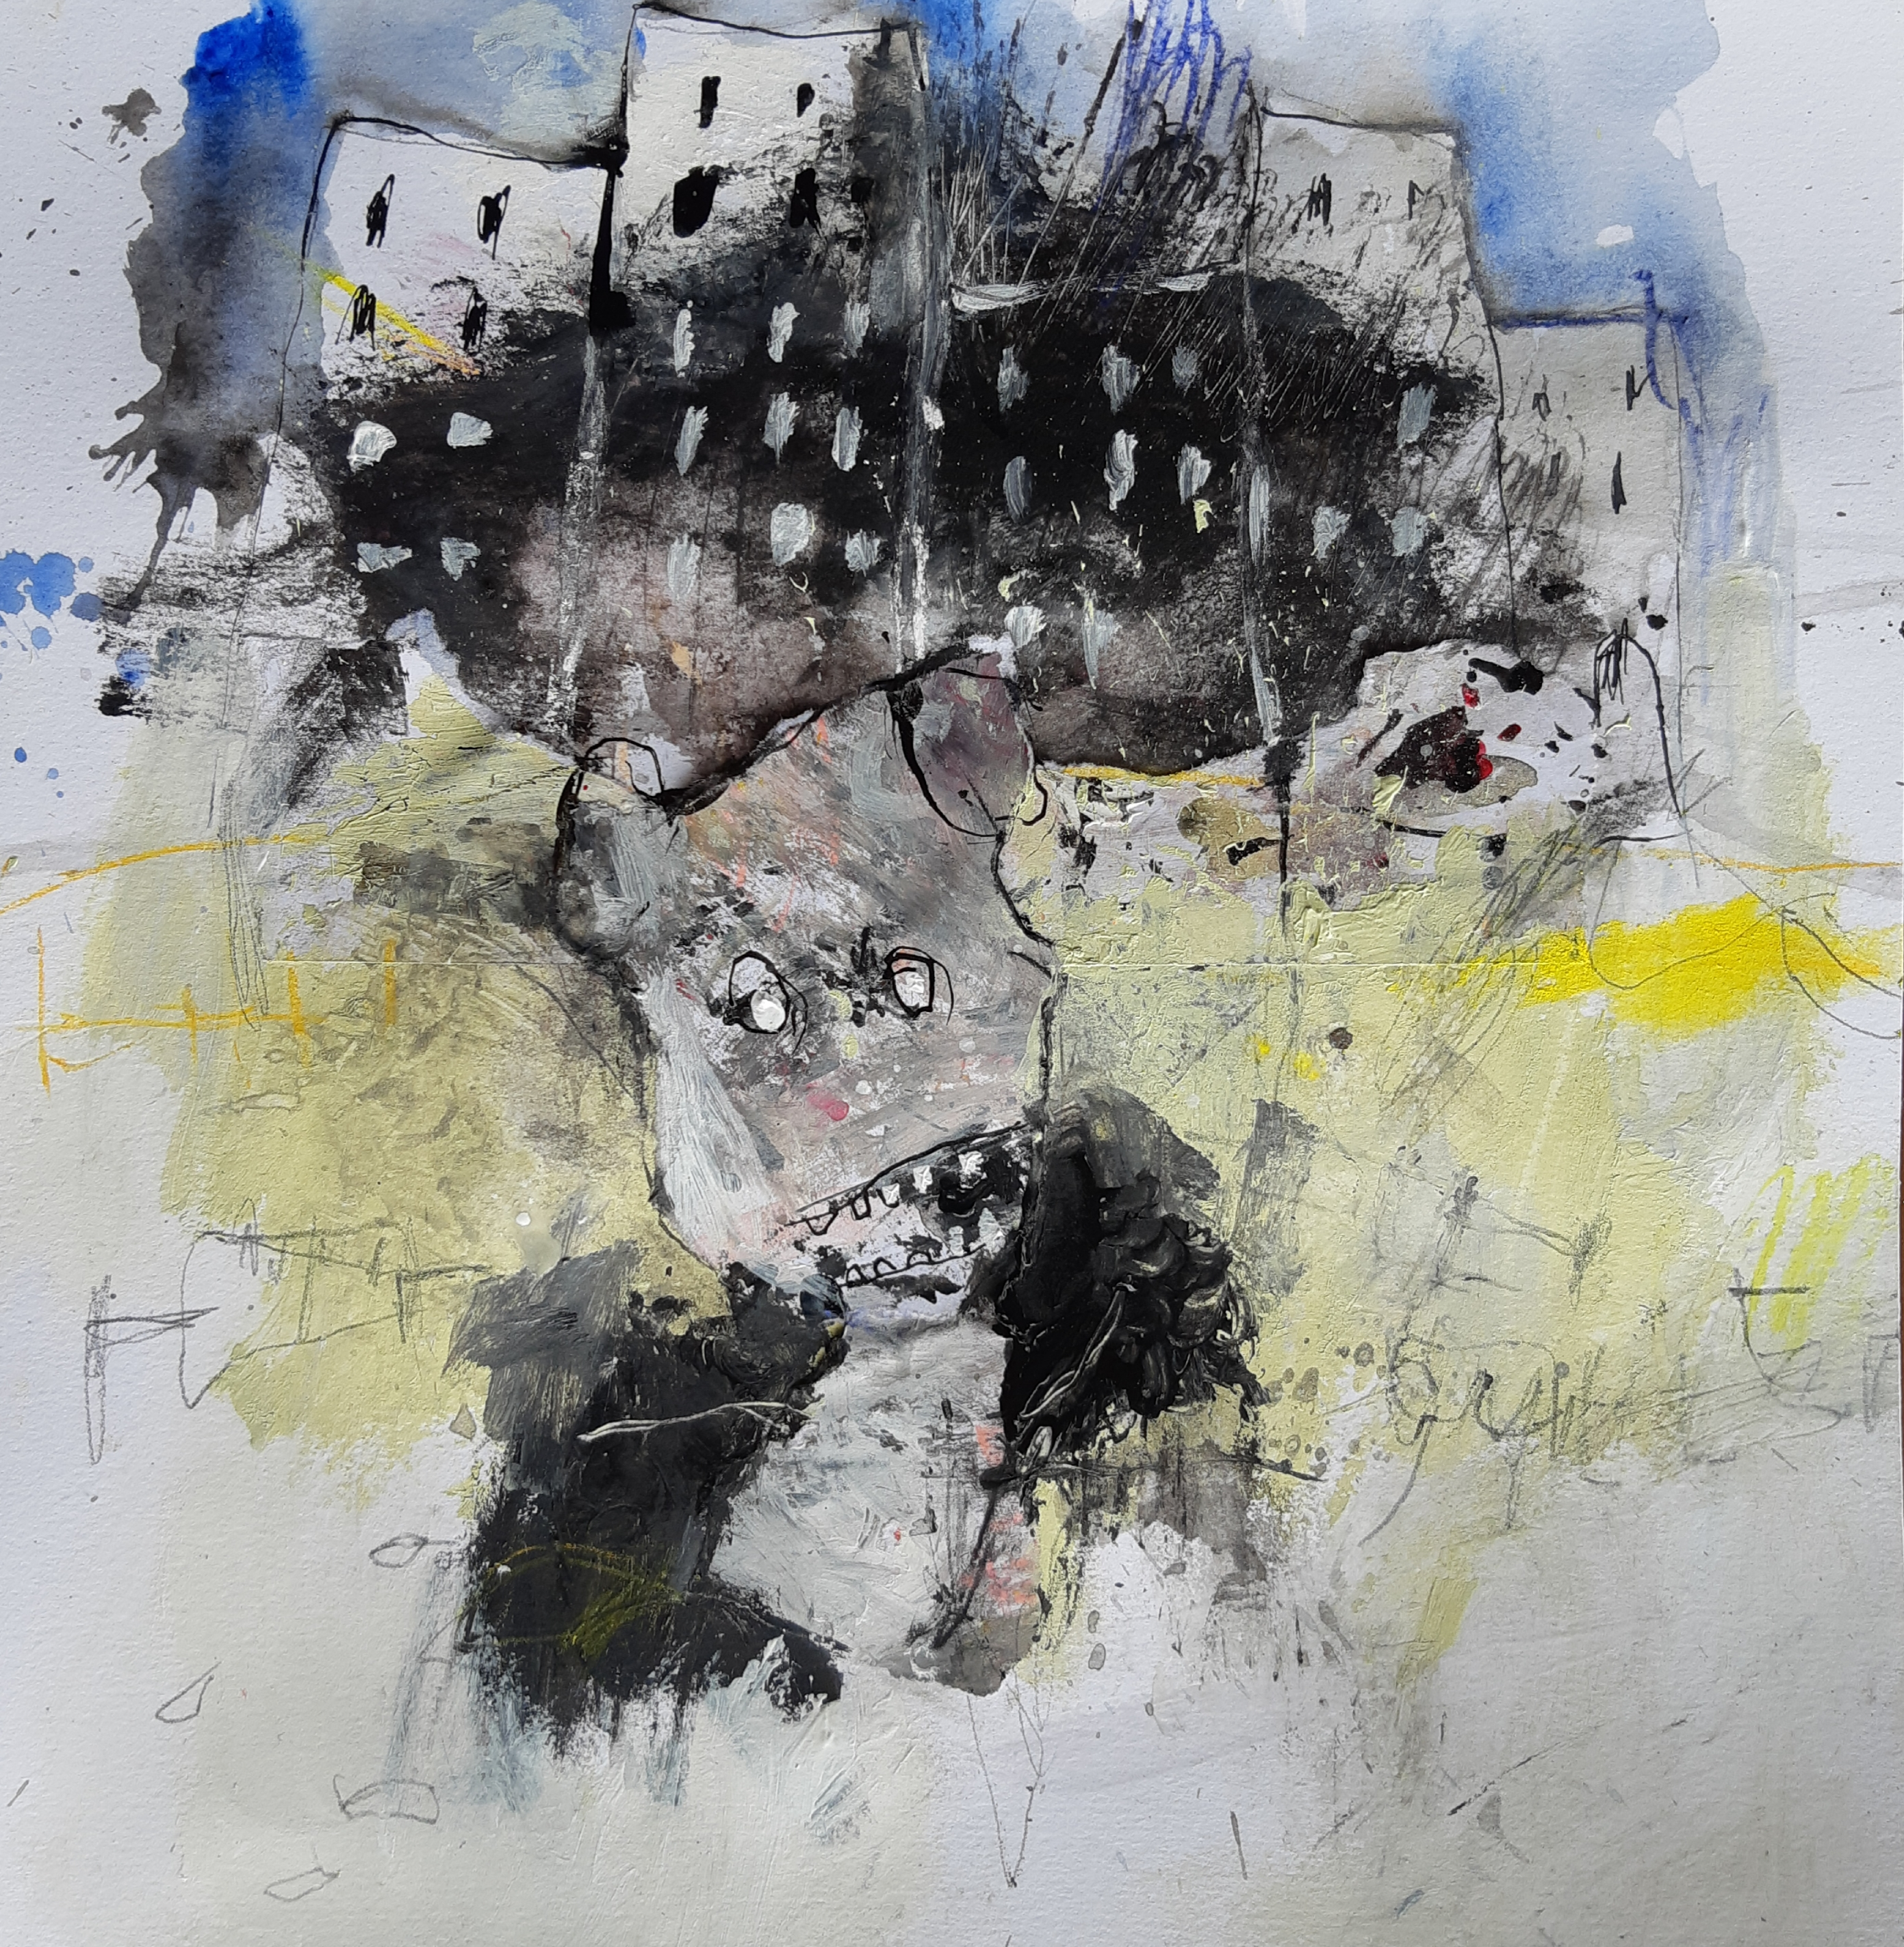 MH22 Kid Blue going to the city, mixed media on paper, 27,5 x 29,7 cm, 2020